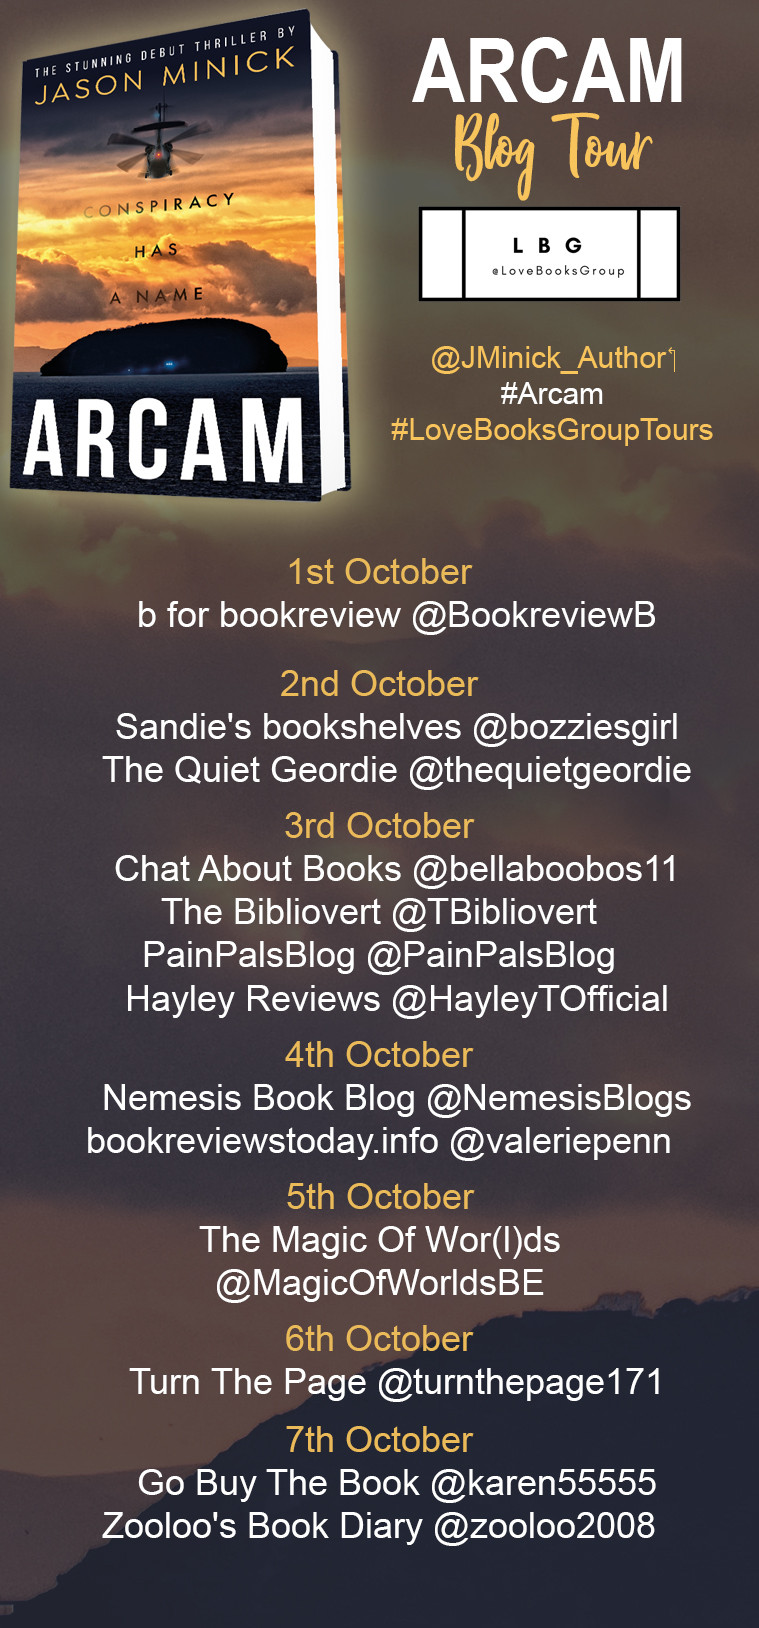 Hello readers! Today is day-one of the blog tour for Arcam. Why not follow the tour and find out what the bloggers think?